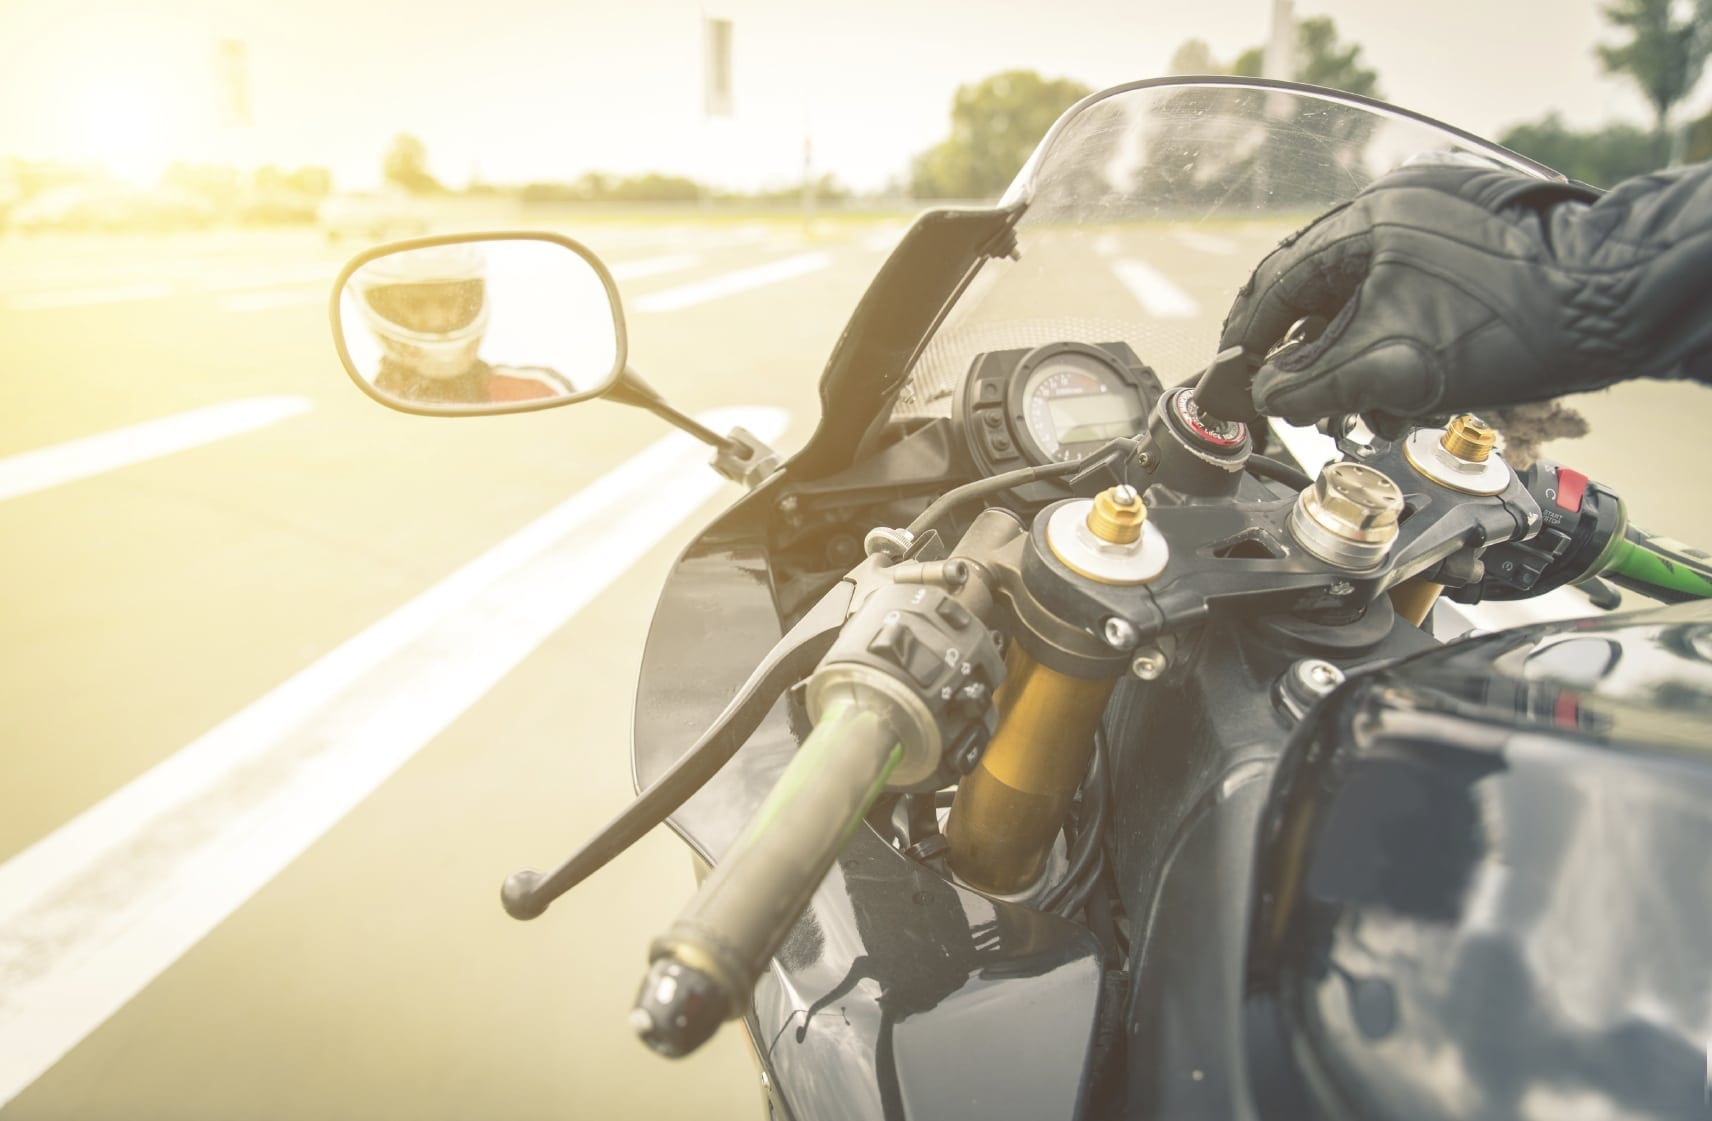 Motorcycle Rider Starting Ignition Stock Photo